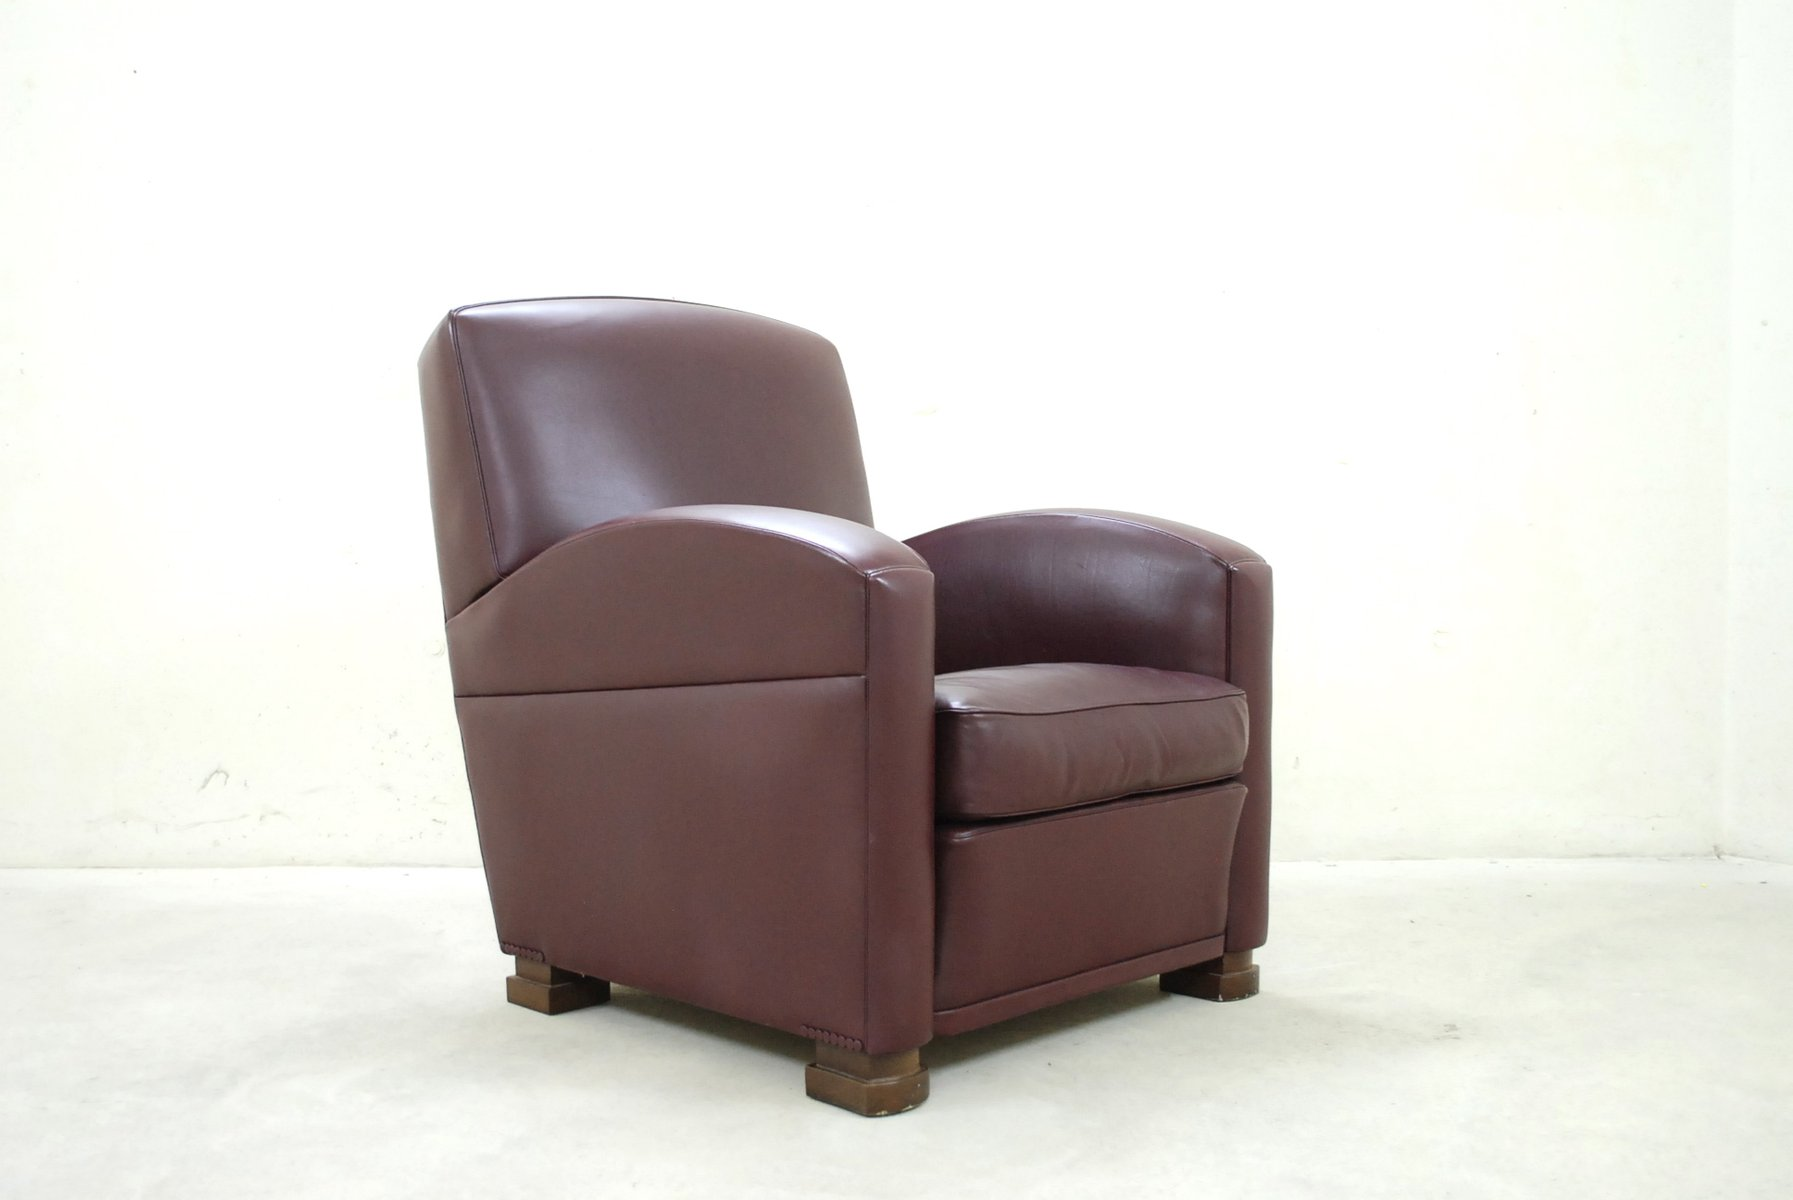 italian tabarin leather armchair from poltrona frau 1989 for sale at pamono. Black Bedroom Furniture Sets. Home Design Ideas